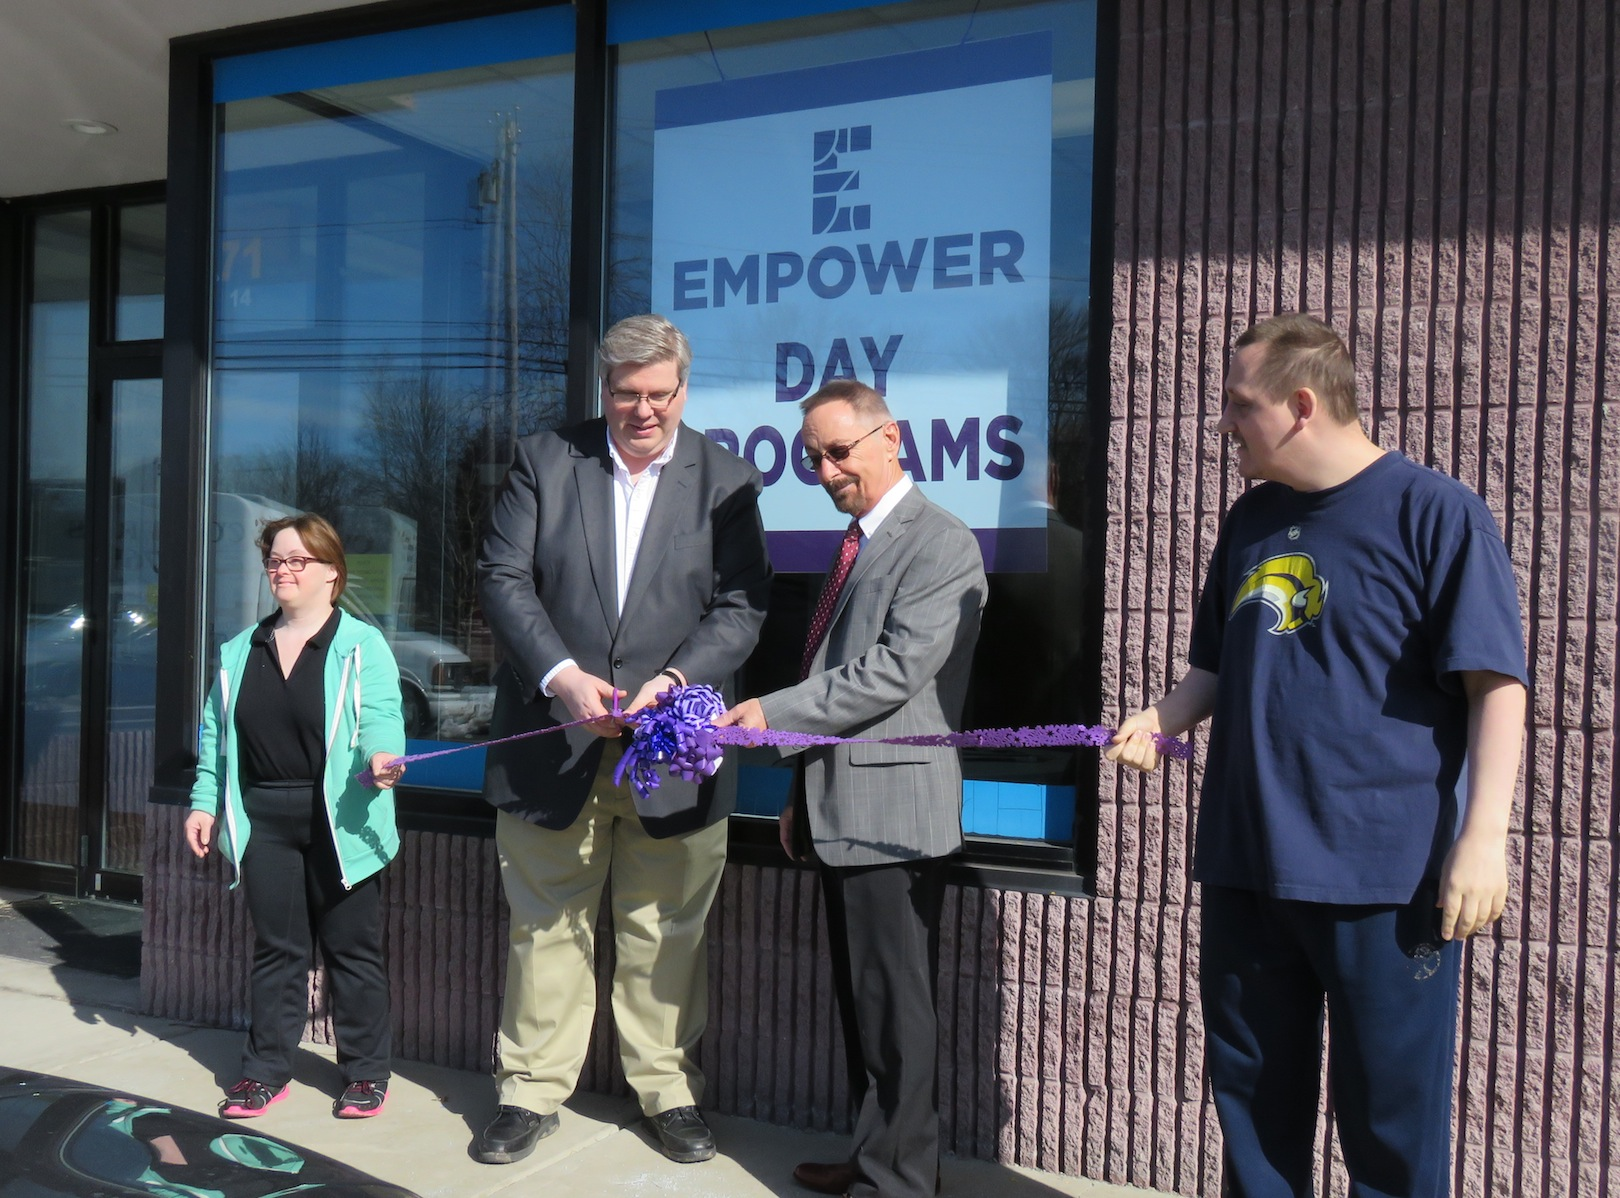 Pictured, from left, Denise Dean, Empower CEO Jeff Paterson, Wheatfield Supervisor Don MacSwan and Kevin Hance cut the ribbon to the Wheatfield facility. (Photo by David Yarger)